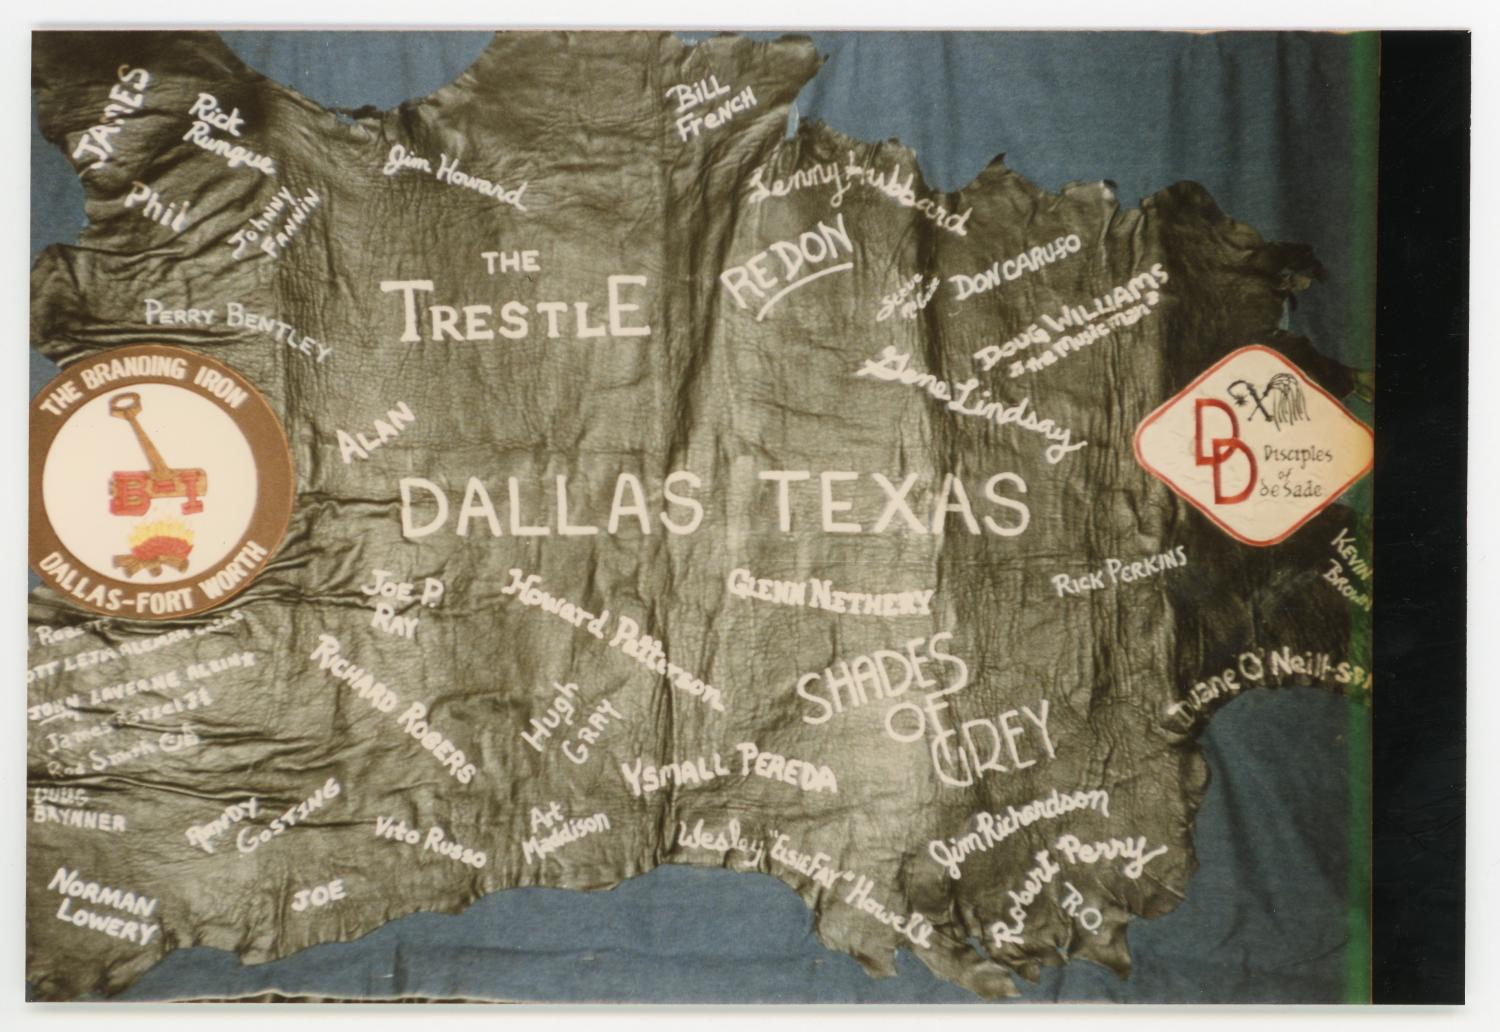 """[Quilt Section from The Trestle], Photograph of a section of the AIDS memorial quilt from The Trestle. Names include Rick Rungue, Perry Bentley, Johnny Fannin, Doug Brynner, Norman Lowery, Randy Gosting, Jim Howard, Joe P. Ray, Richard Rogers, Vito Russo, Howard Pattison, Hugh Gray, Art Maddison, Bill French, Glenn Nethery, Ysmall Pereda, Wesley """"Elsiefay"""" Howell, Don Caruso, Doug Williams, Gene Lindsay. Jim Richardson, Robert Perry, Rick Perkins, Duane ONeill, and Kevin Brown.,"""